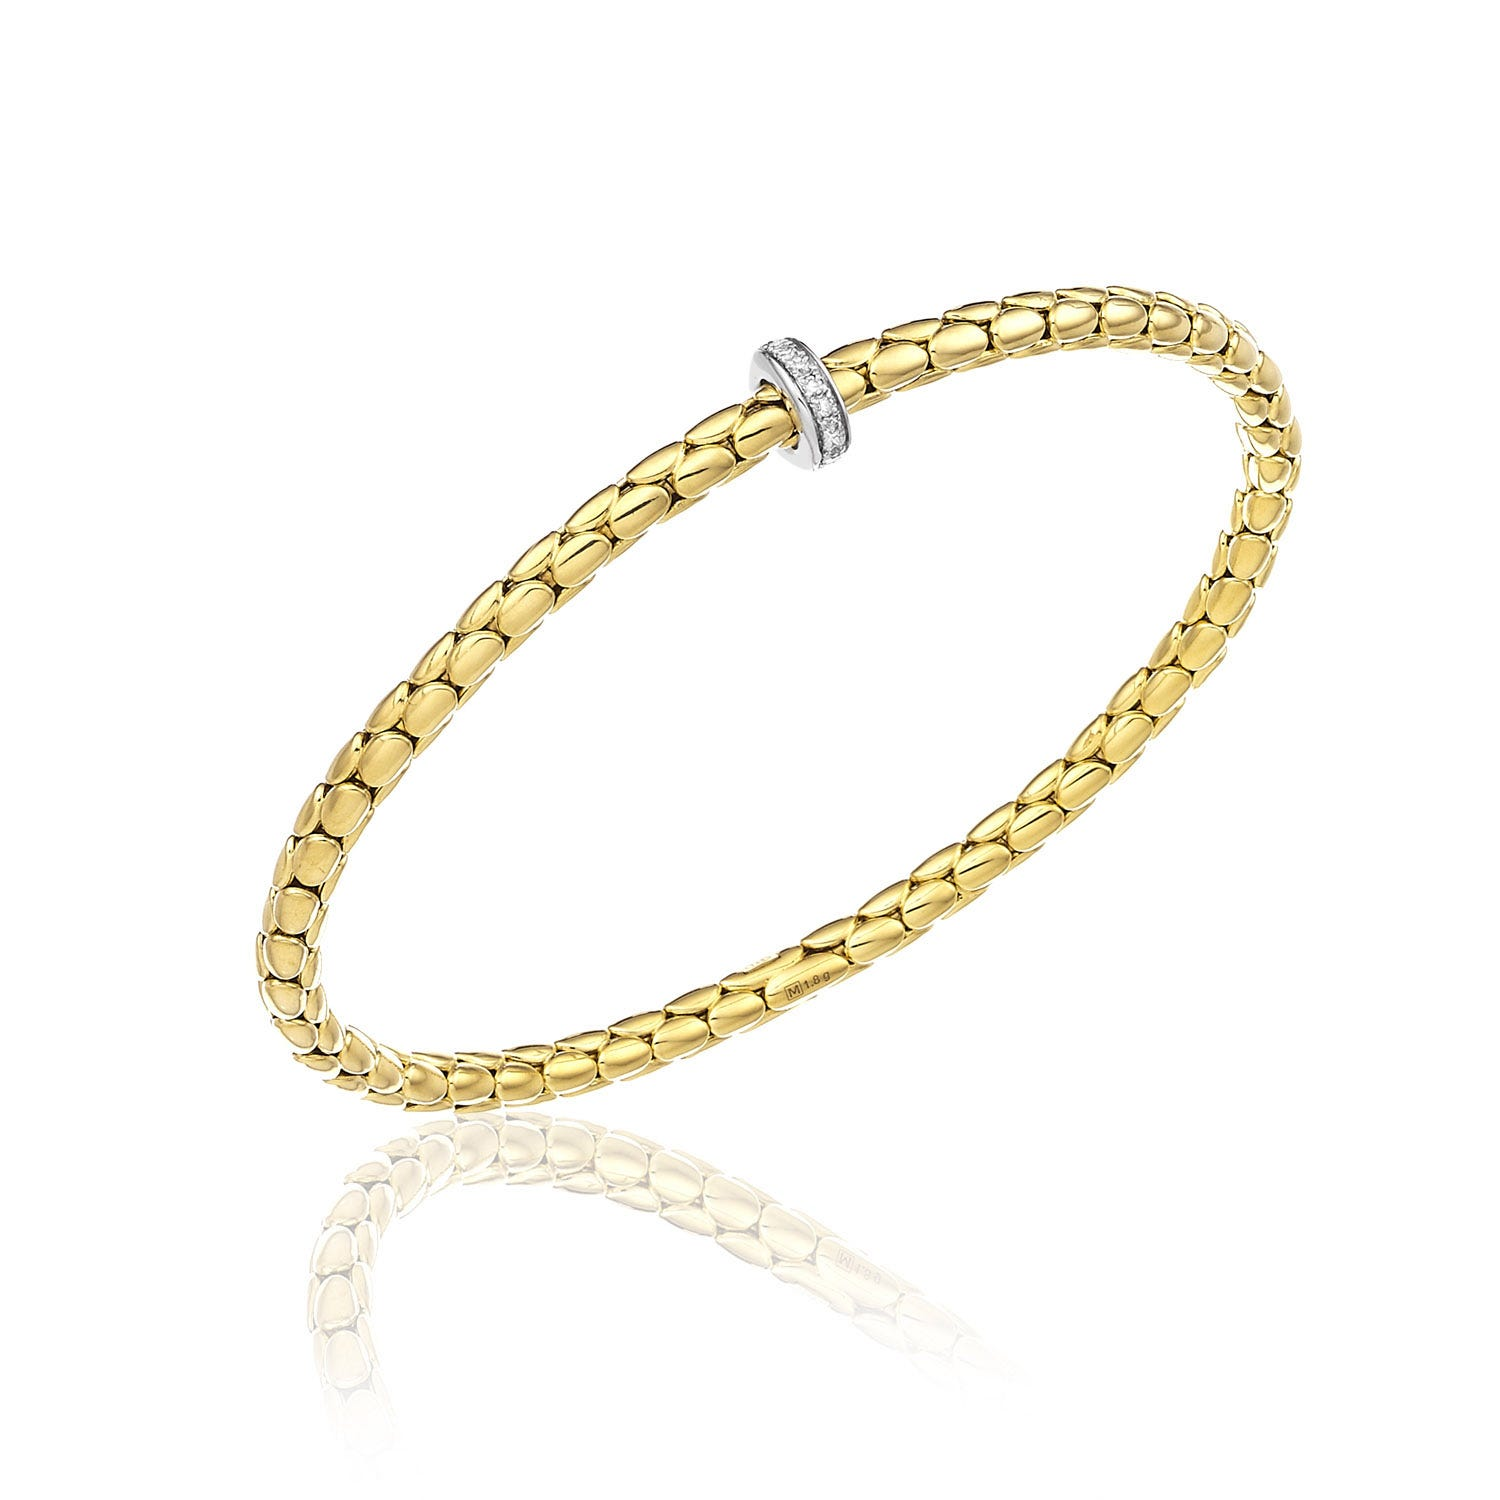 Chimento 18ct Yellow Gold and Diamond Stretch Spring Thin Bracelet